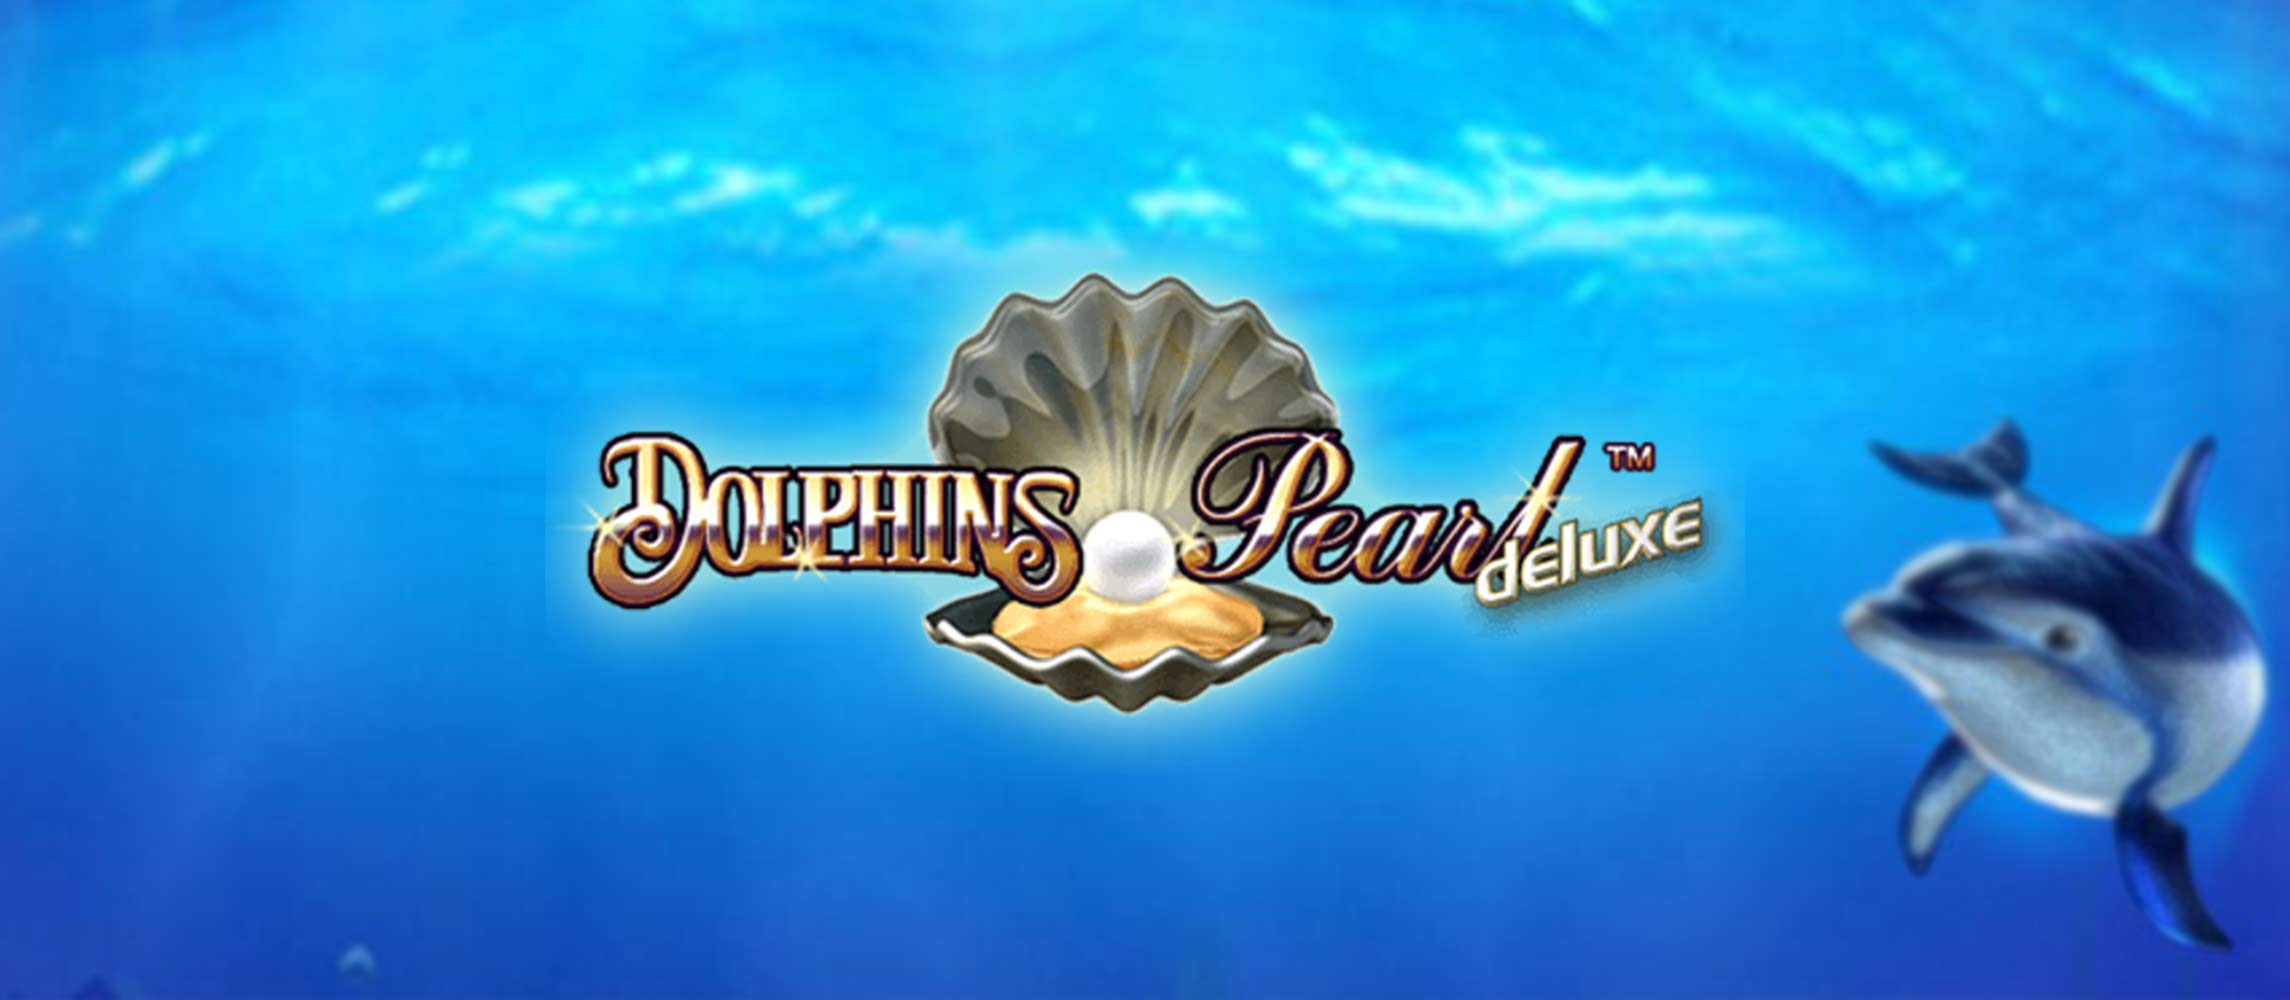 Dolphin's Pearls Deluxe